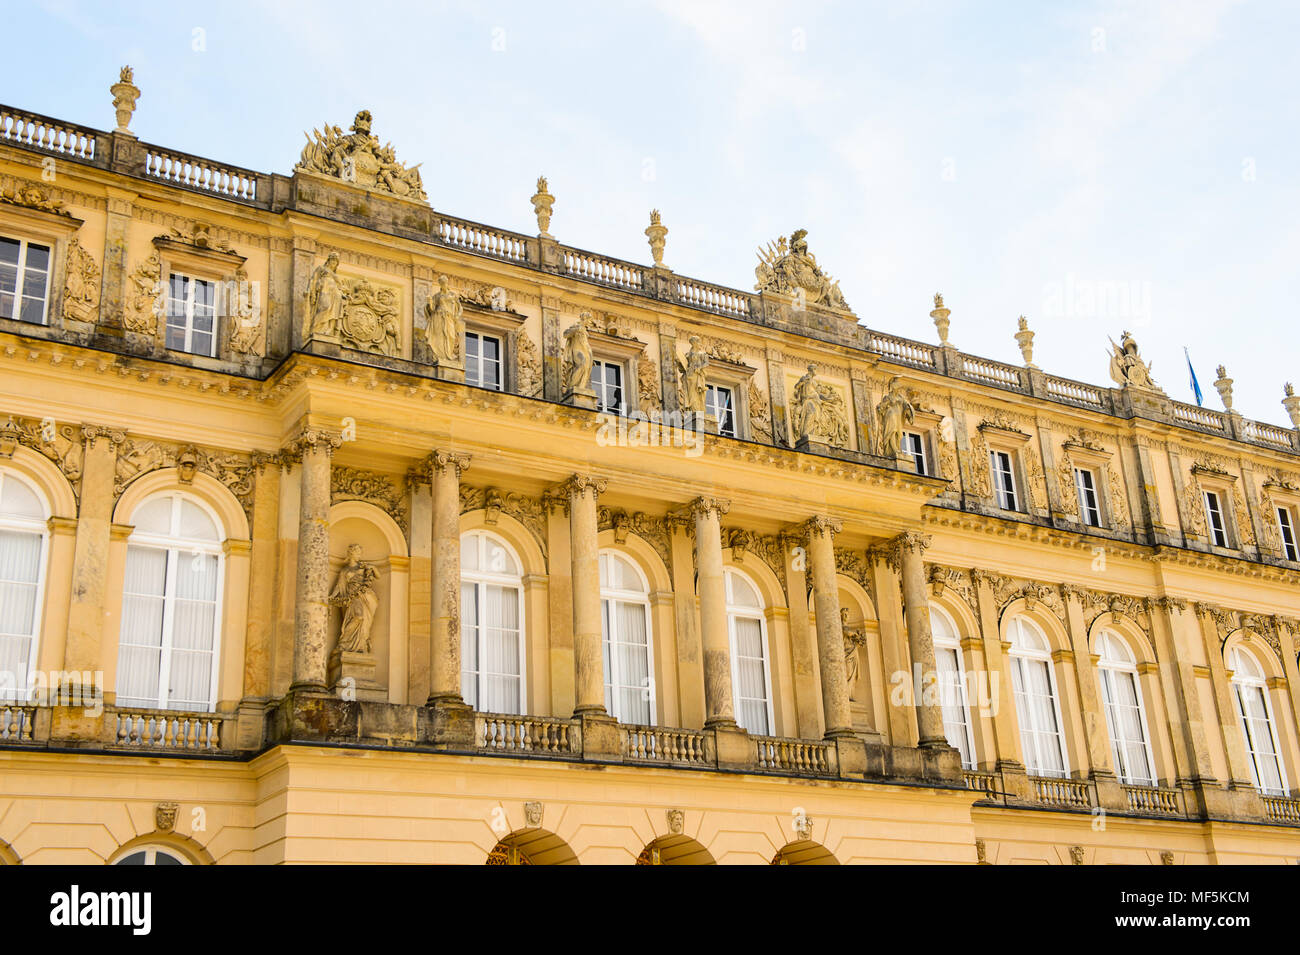 Herrenchiemsee Palace , one of the most famous castles and the largest of King Ludwig II. - Stock Image